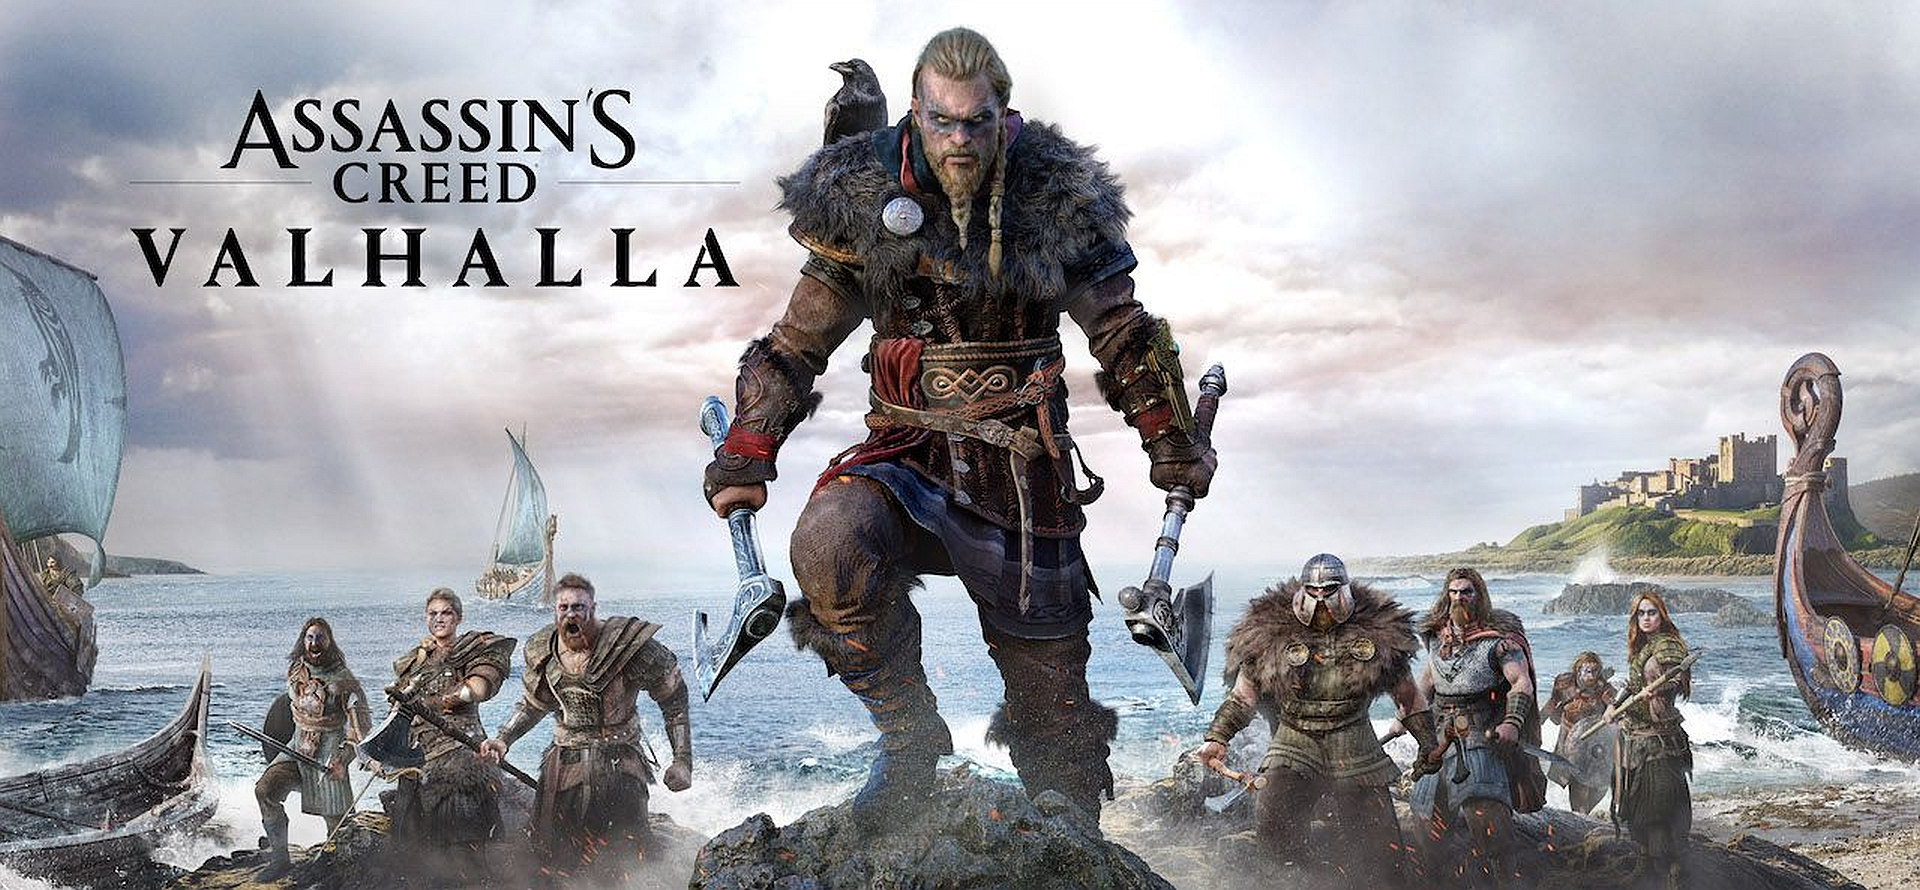 assassin's creed valhalla file size